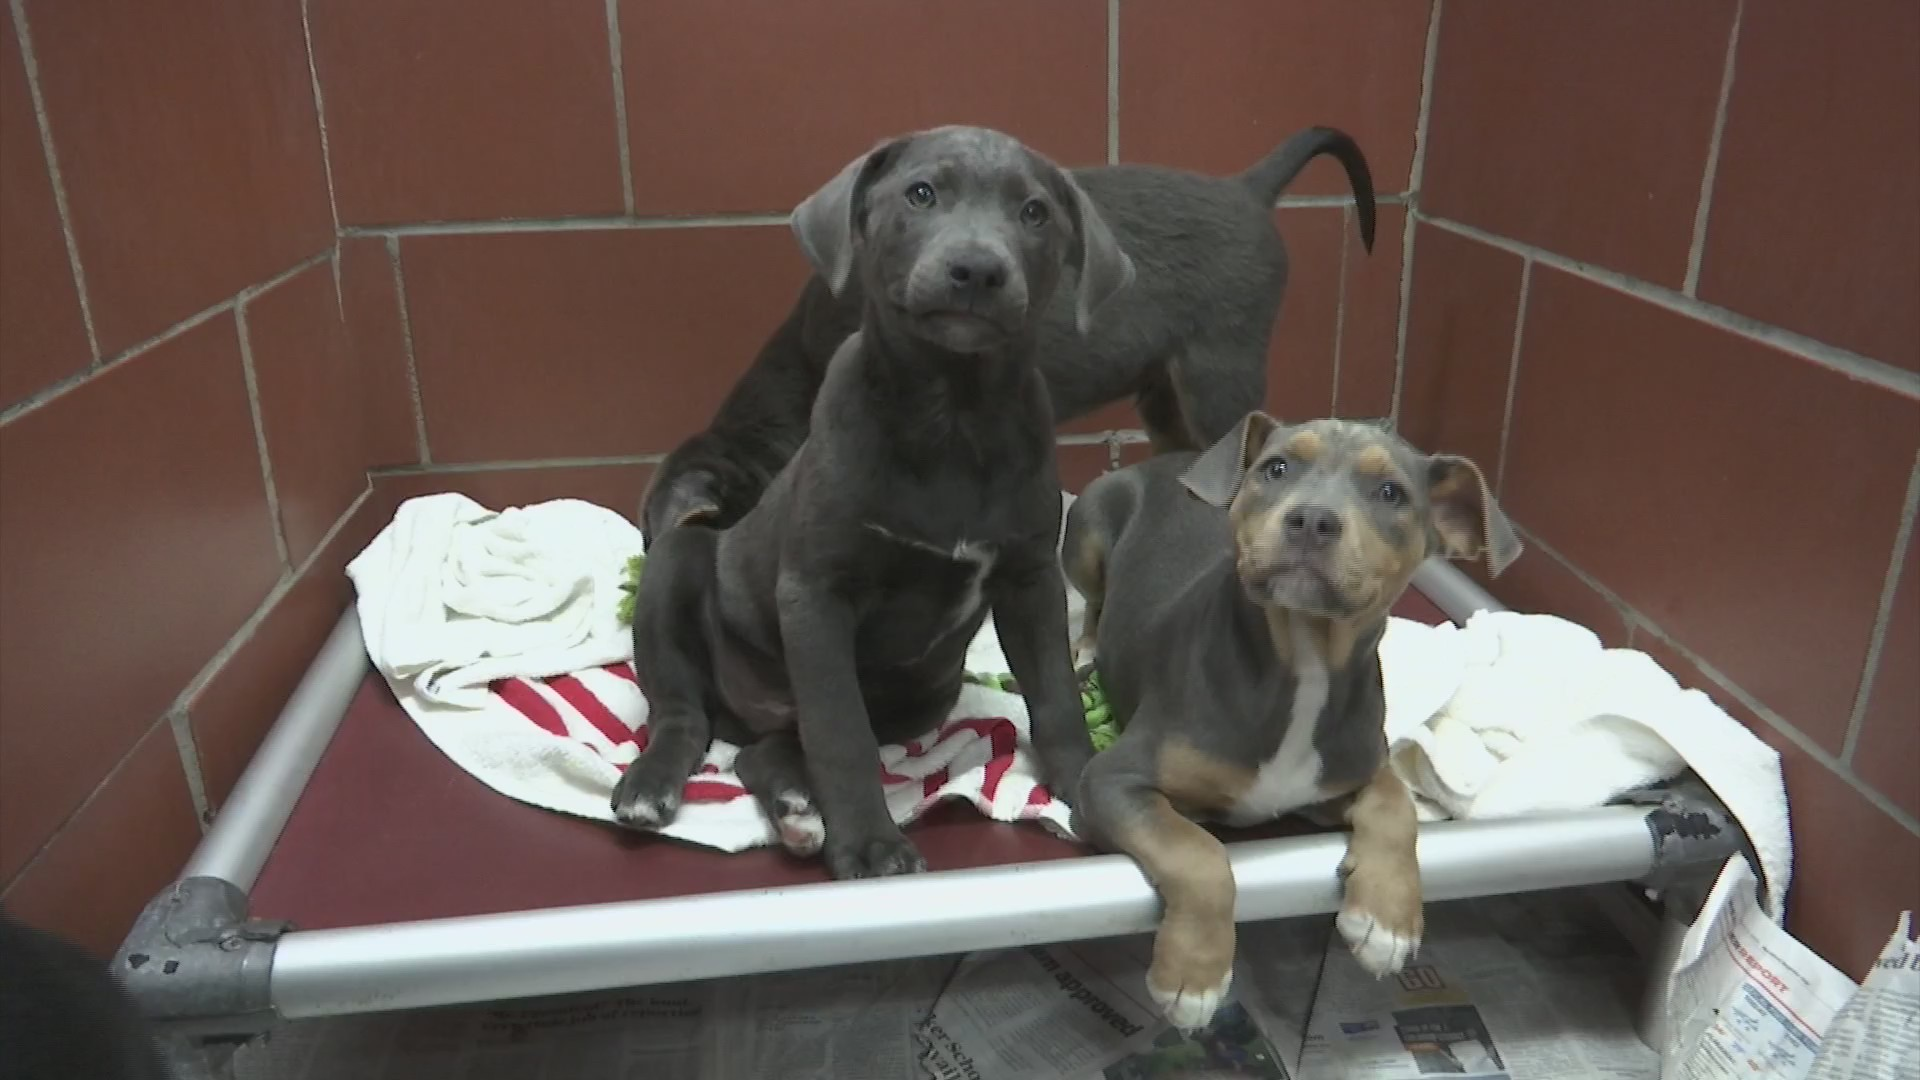 Animal shelters seeing influx of puppies as 'puppy season' approaches